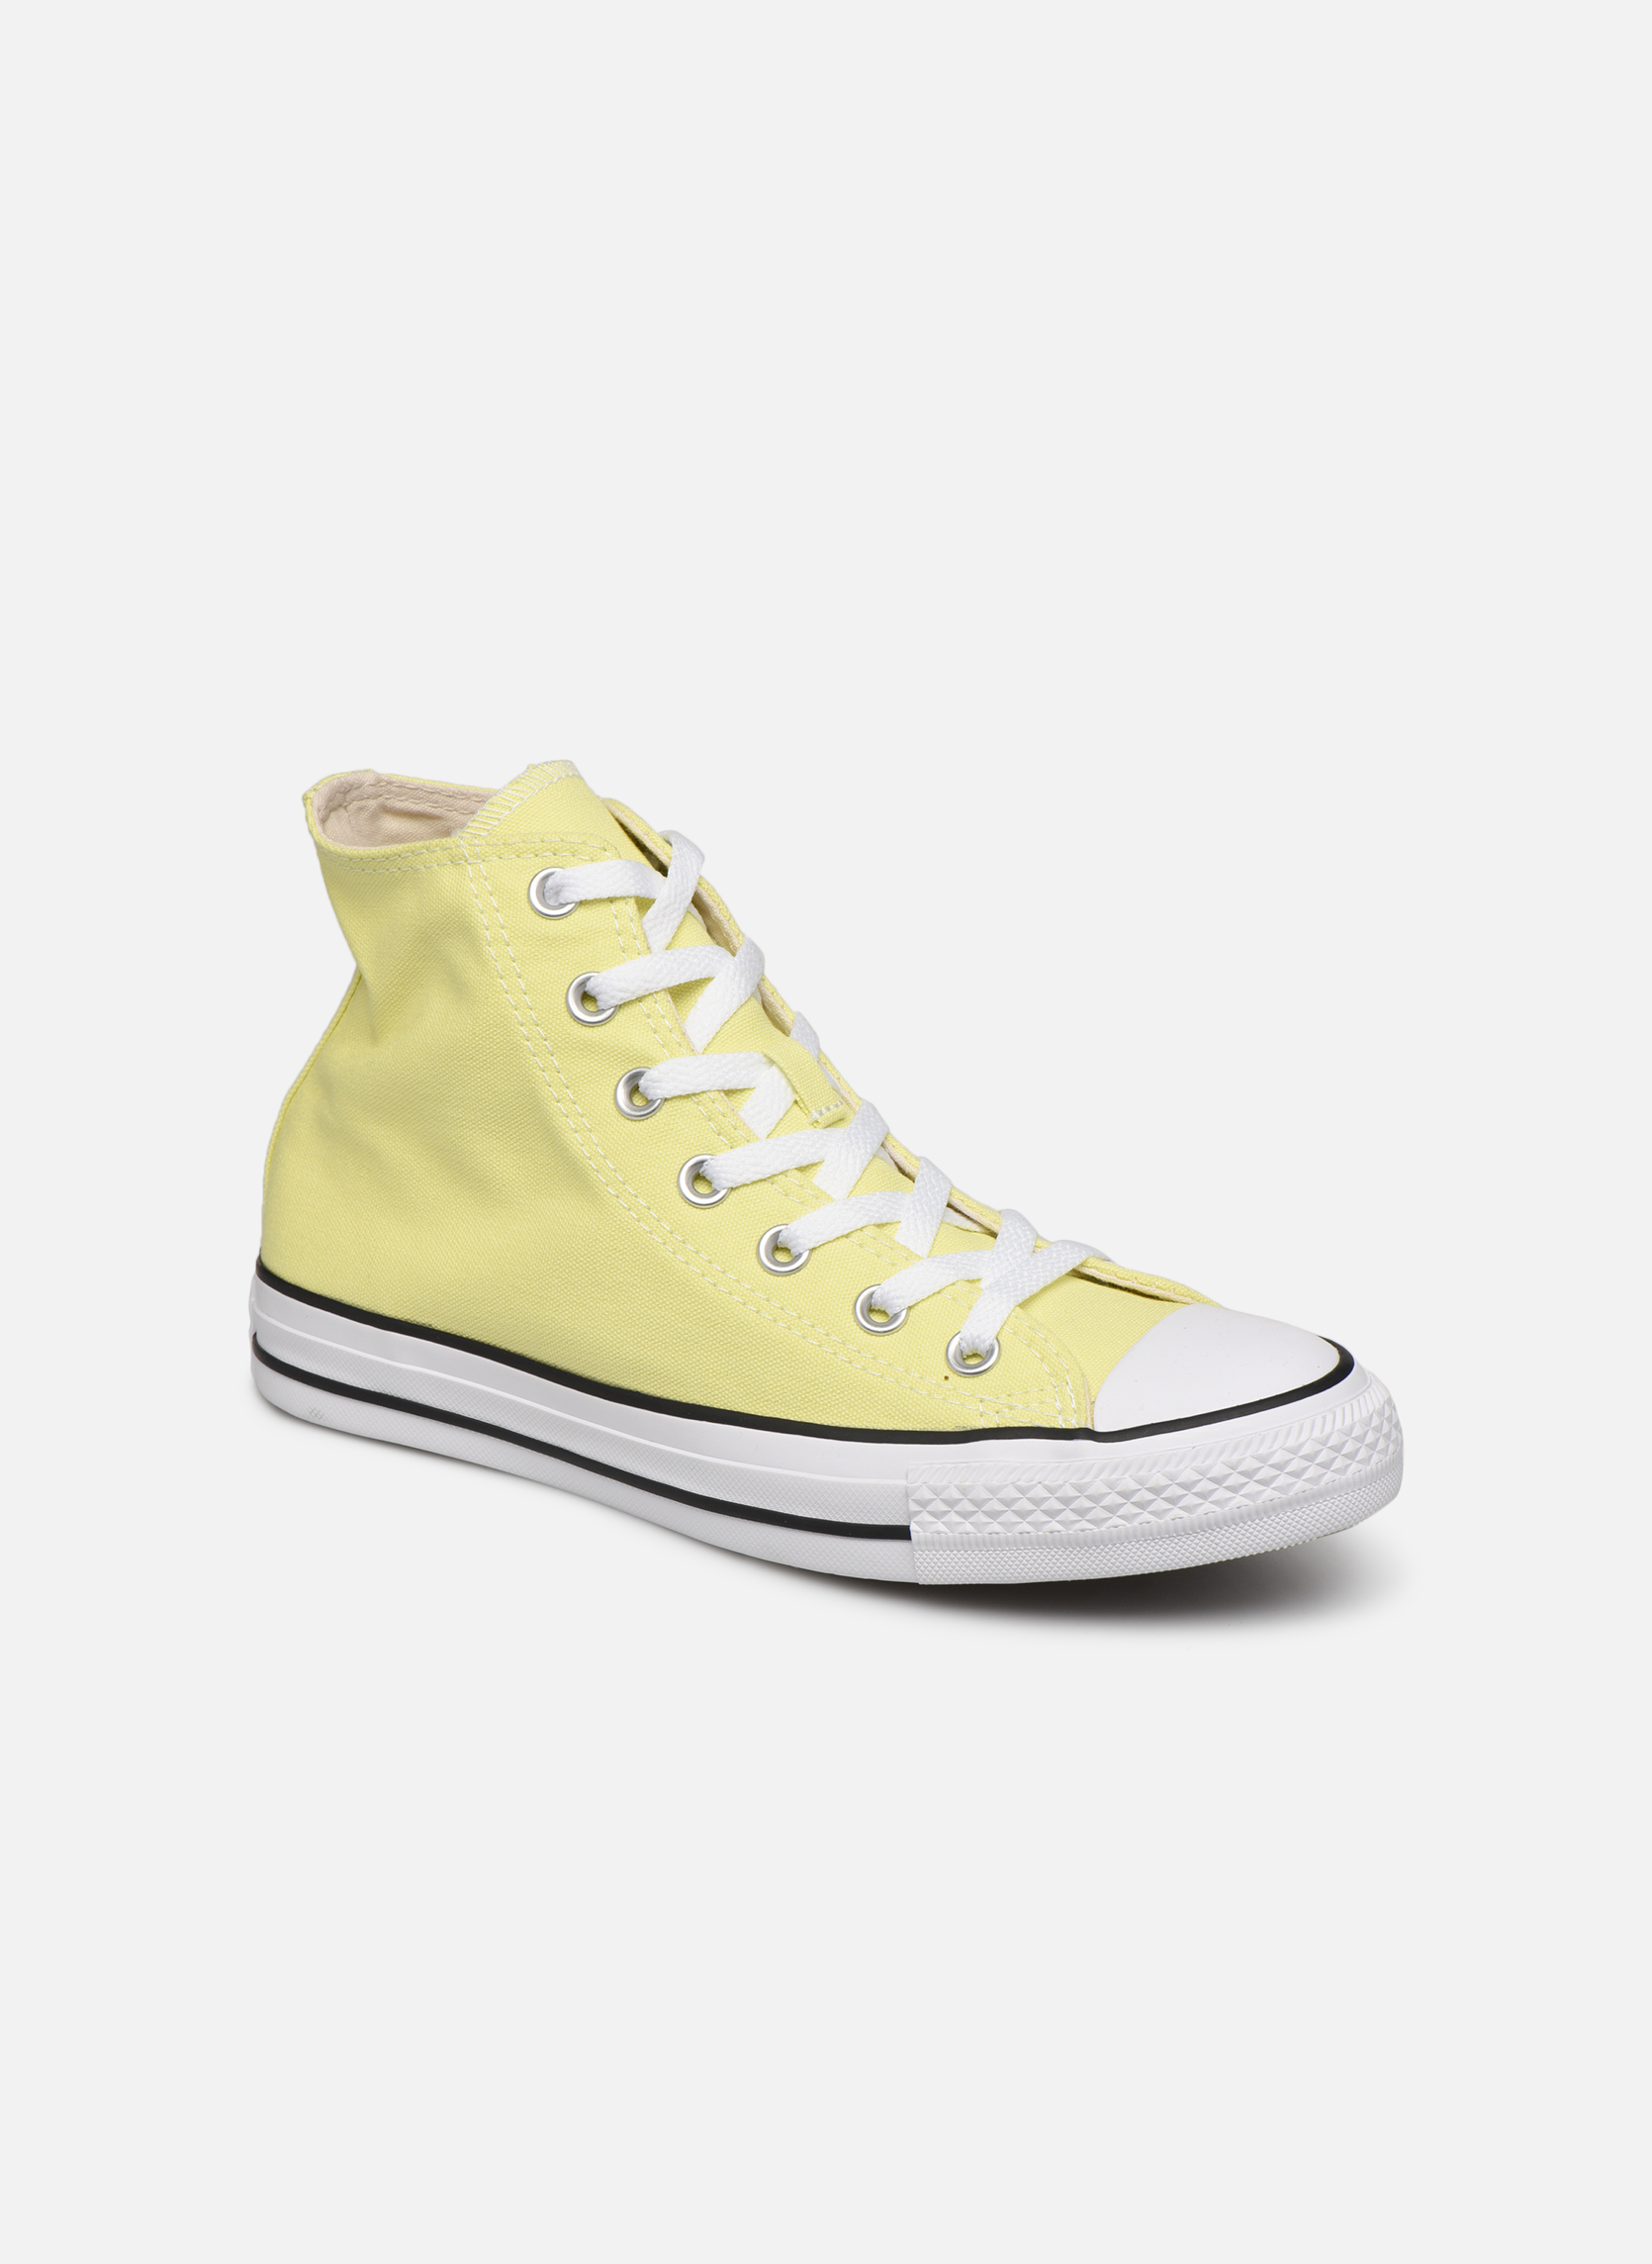 Sneakers Chuck Taylor All Star Seasonal Color Extension Hi by Converse